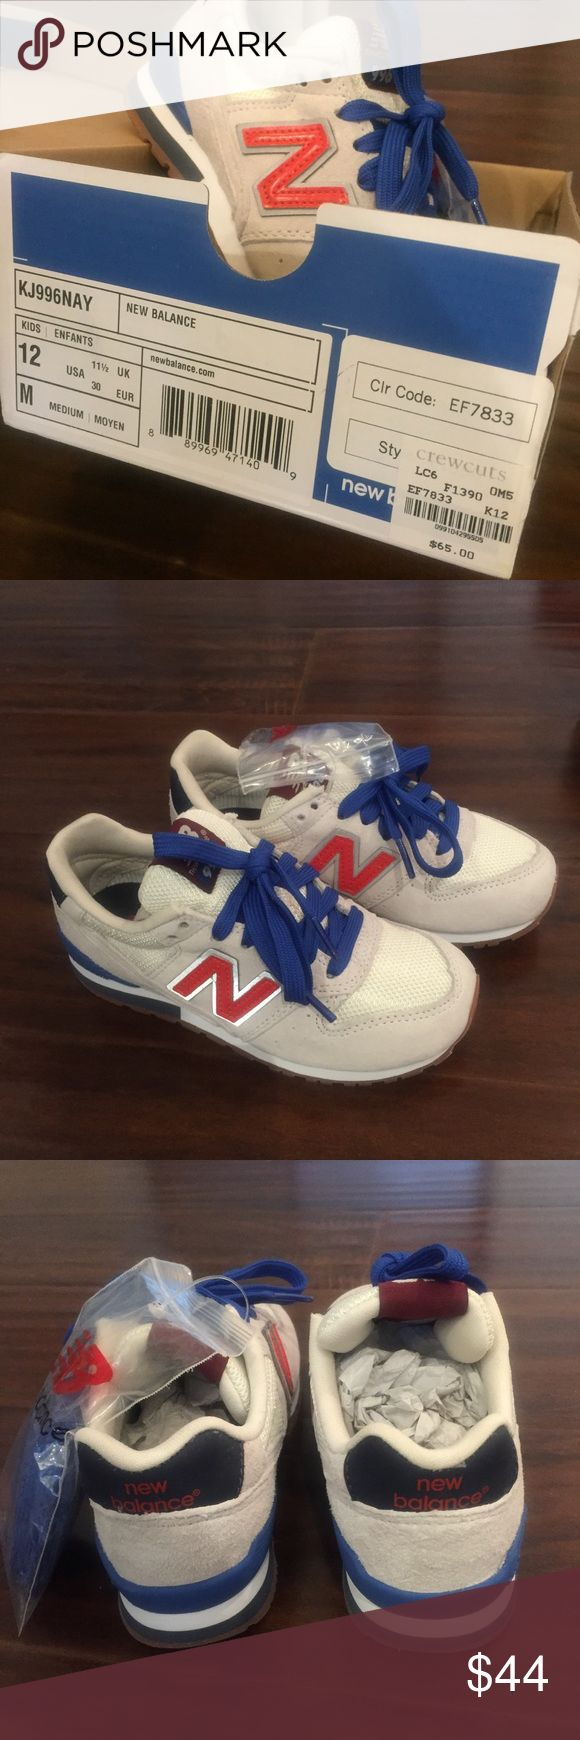 New balance kids shoes size 12 New. Never worn. Bought it from South Coast Plaza at J. Crew store. I paid $65+tax. It was so popular shoes. Feel free to ask and make an offer. New Balance Shoes Sneakers